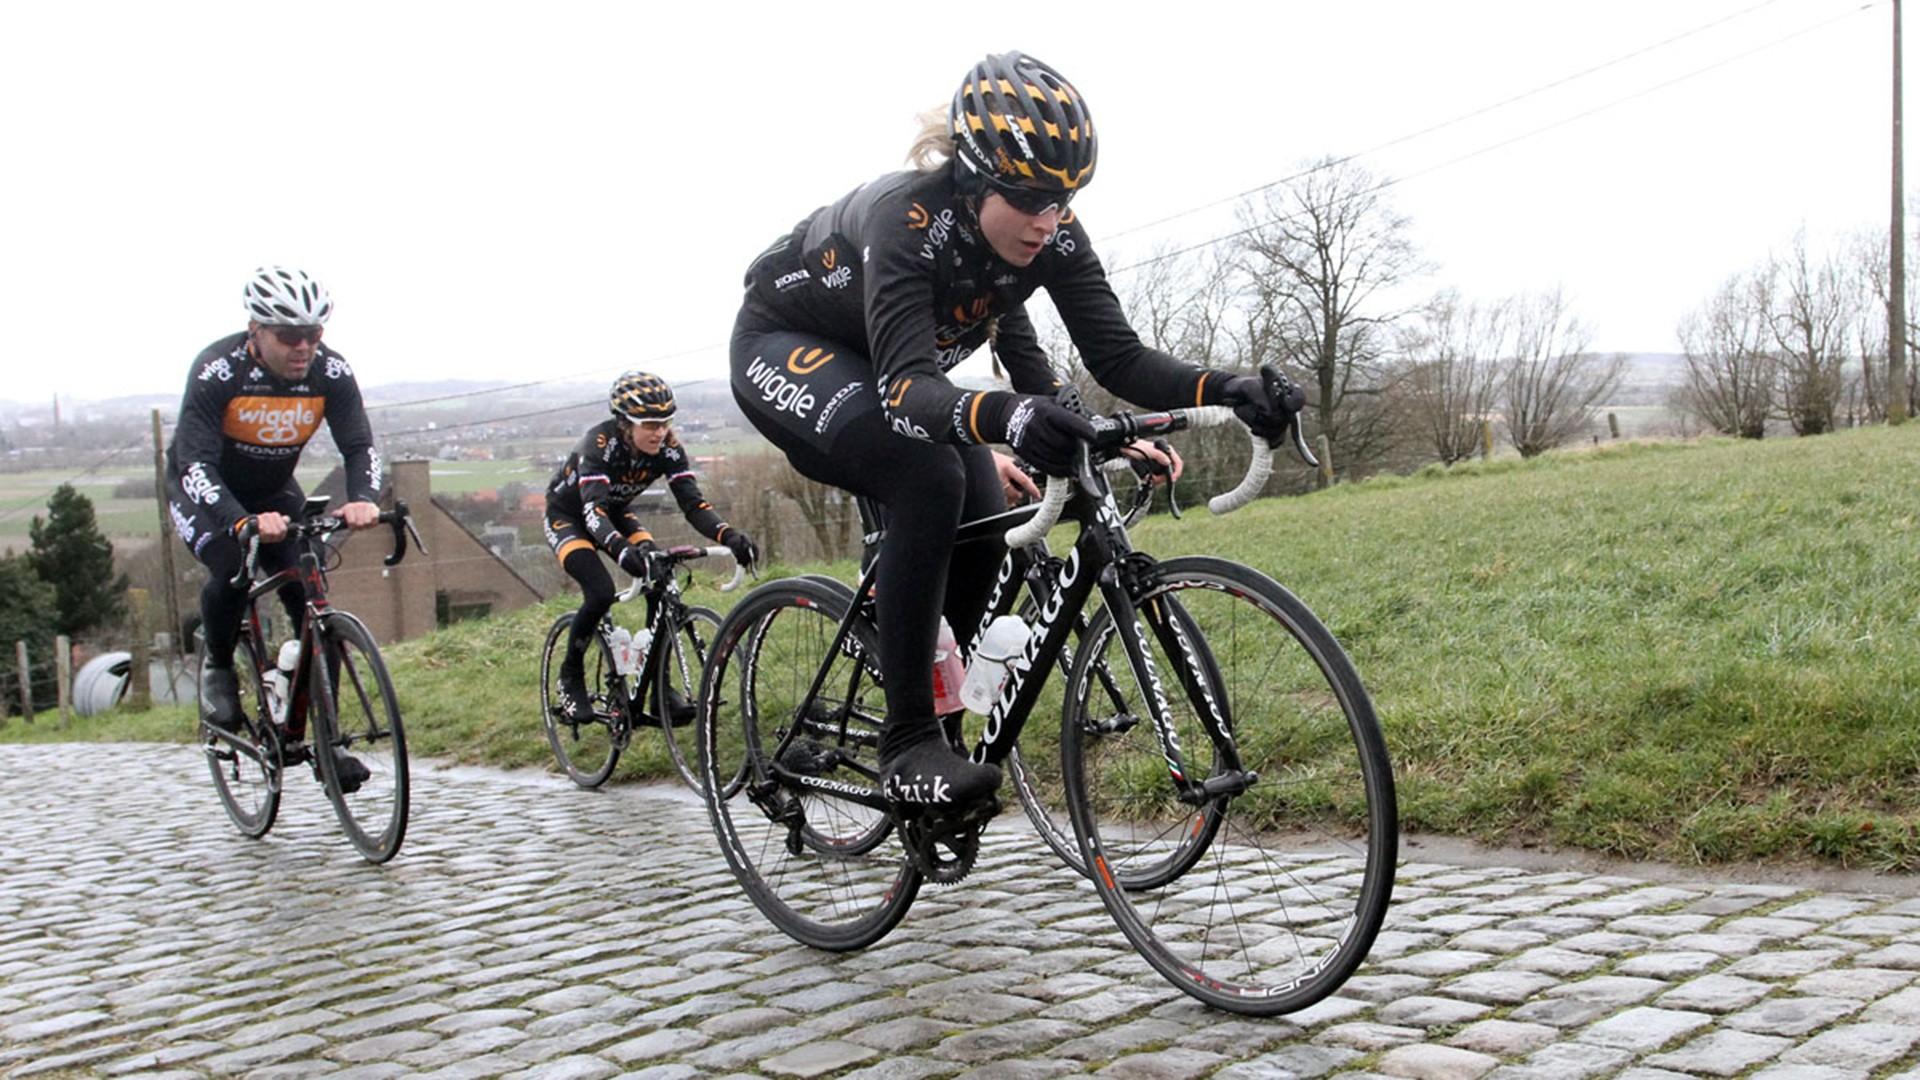 Want to improve your bike handling skills in the wet? Try cyclocross racing